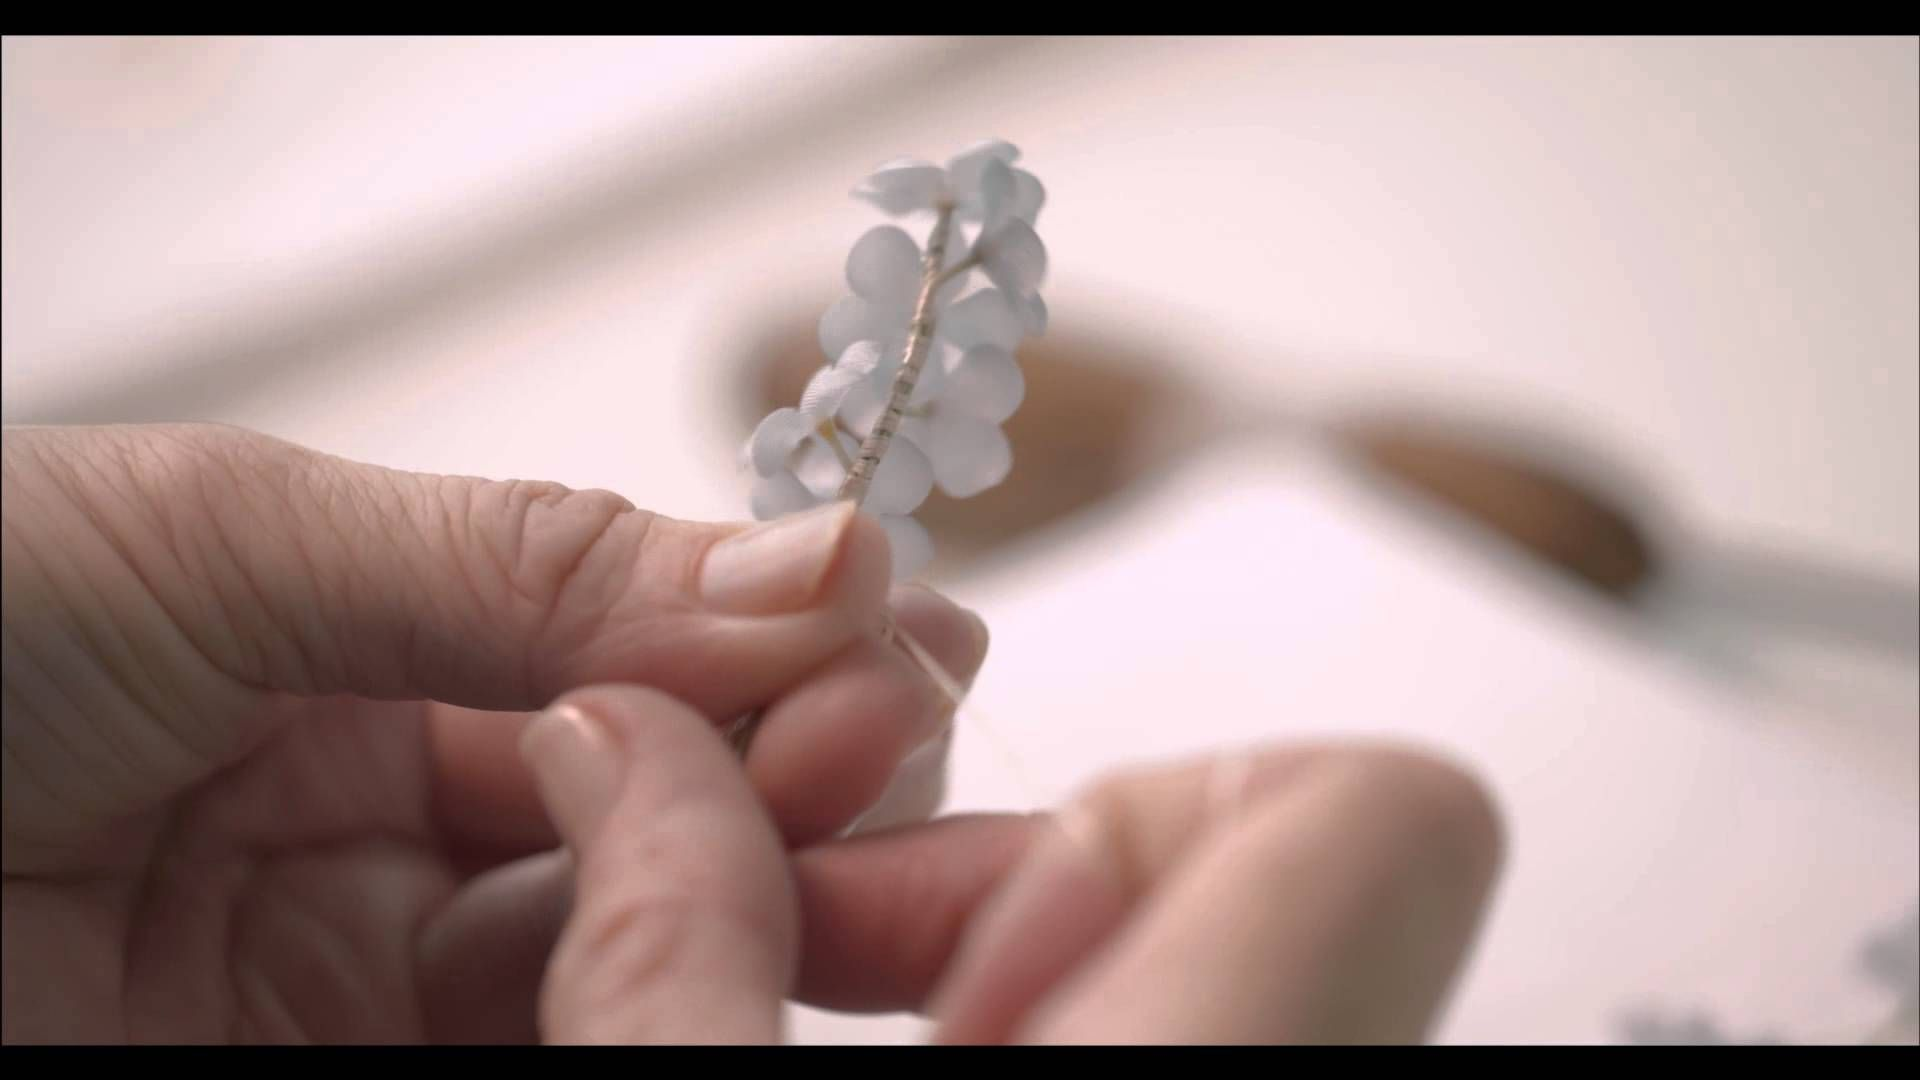 """Le Petit Théâtre Dior - Making of """"Miss Dior"""" dress ~ http://www.youtube.com/watch?v=1mihmTwi-rg"""